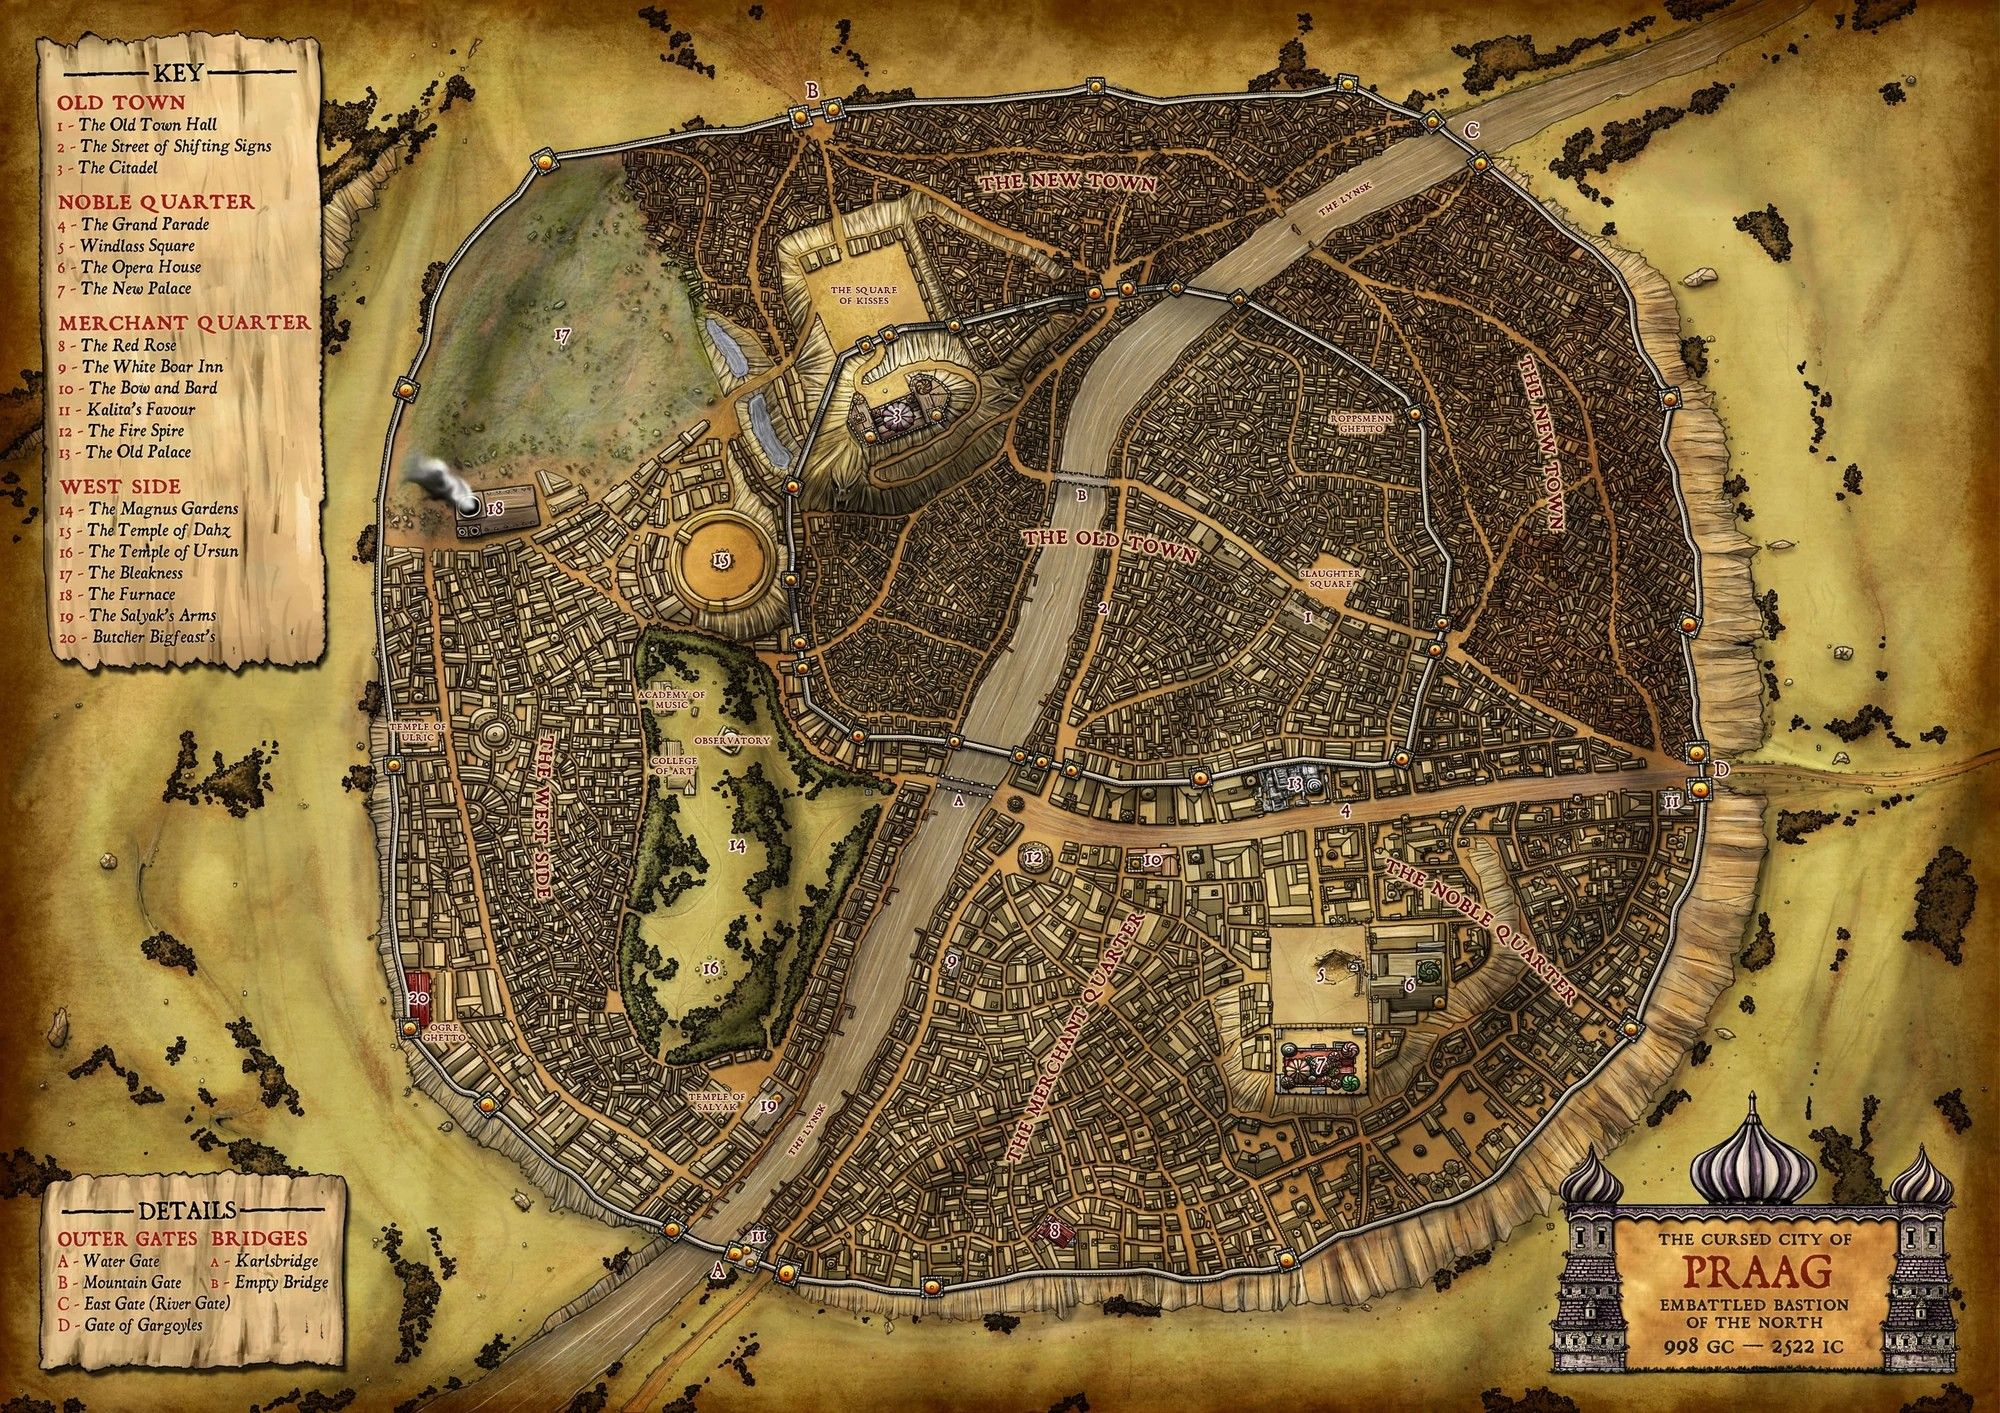 Pin by furywrath on arakesh pinterest fantasy map rpg and find this pin and more on arakesh by furywrath4306 gumiabroncs Image collections